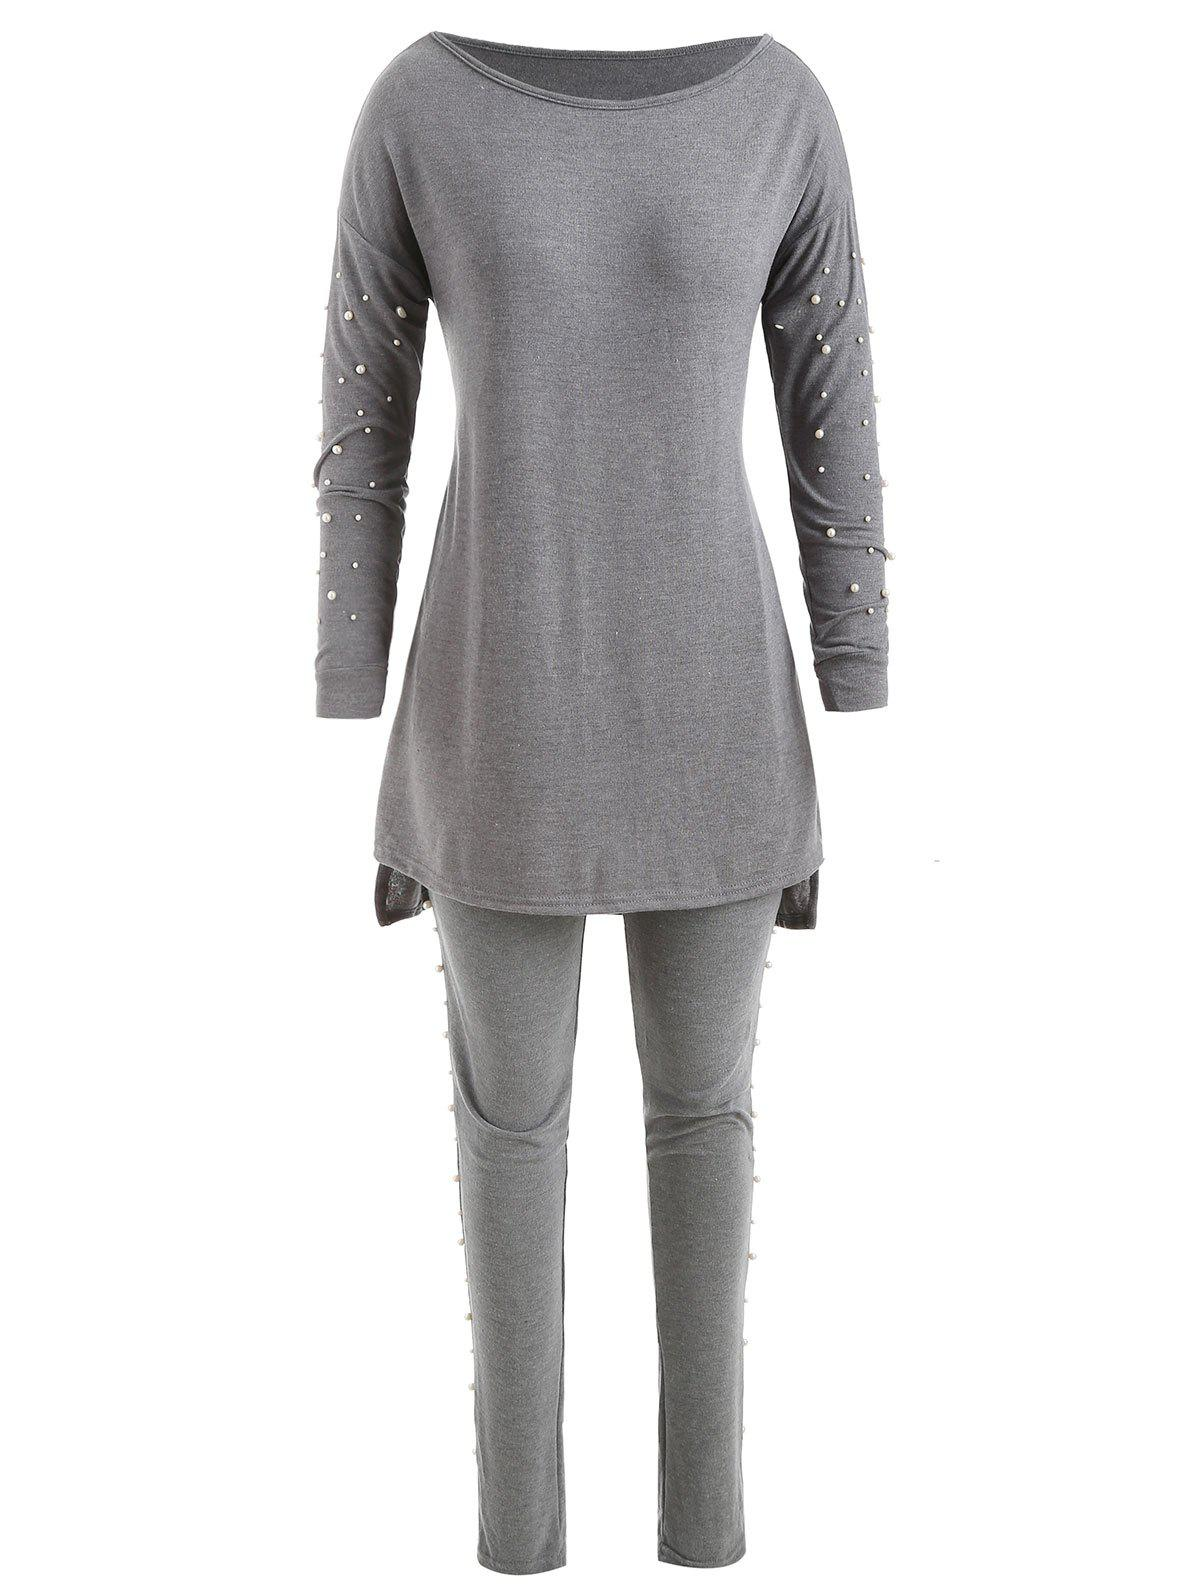 Discount Beaded High Low T-shirt With Pants